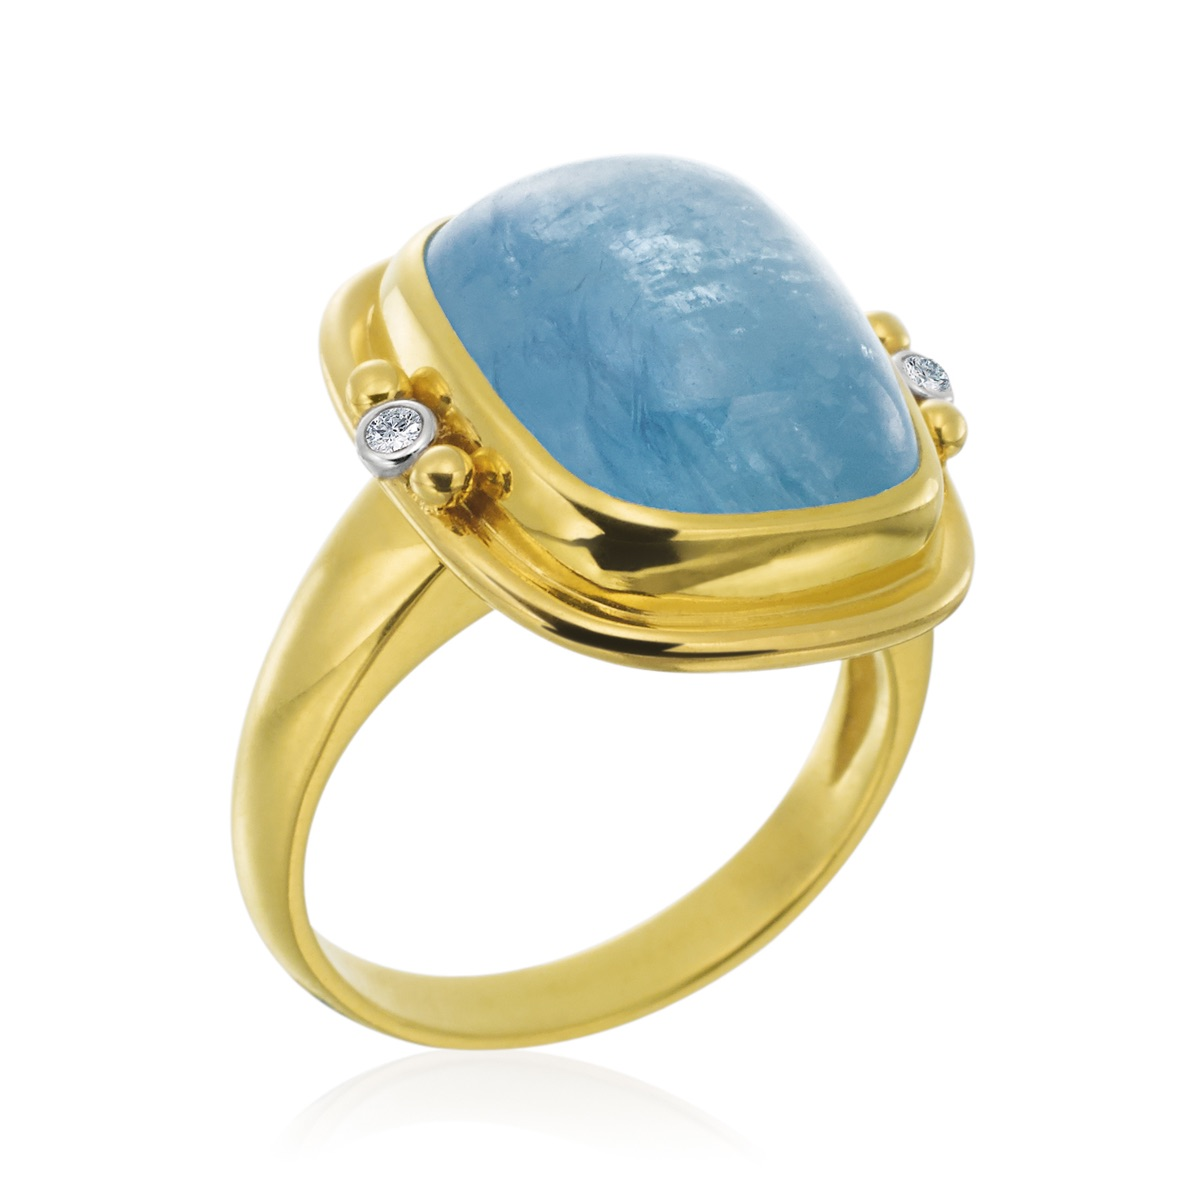 The Jewel - Mazza - Lookbook - Gold and Blue Ring